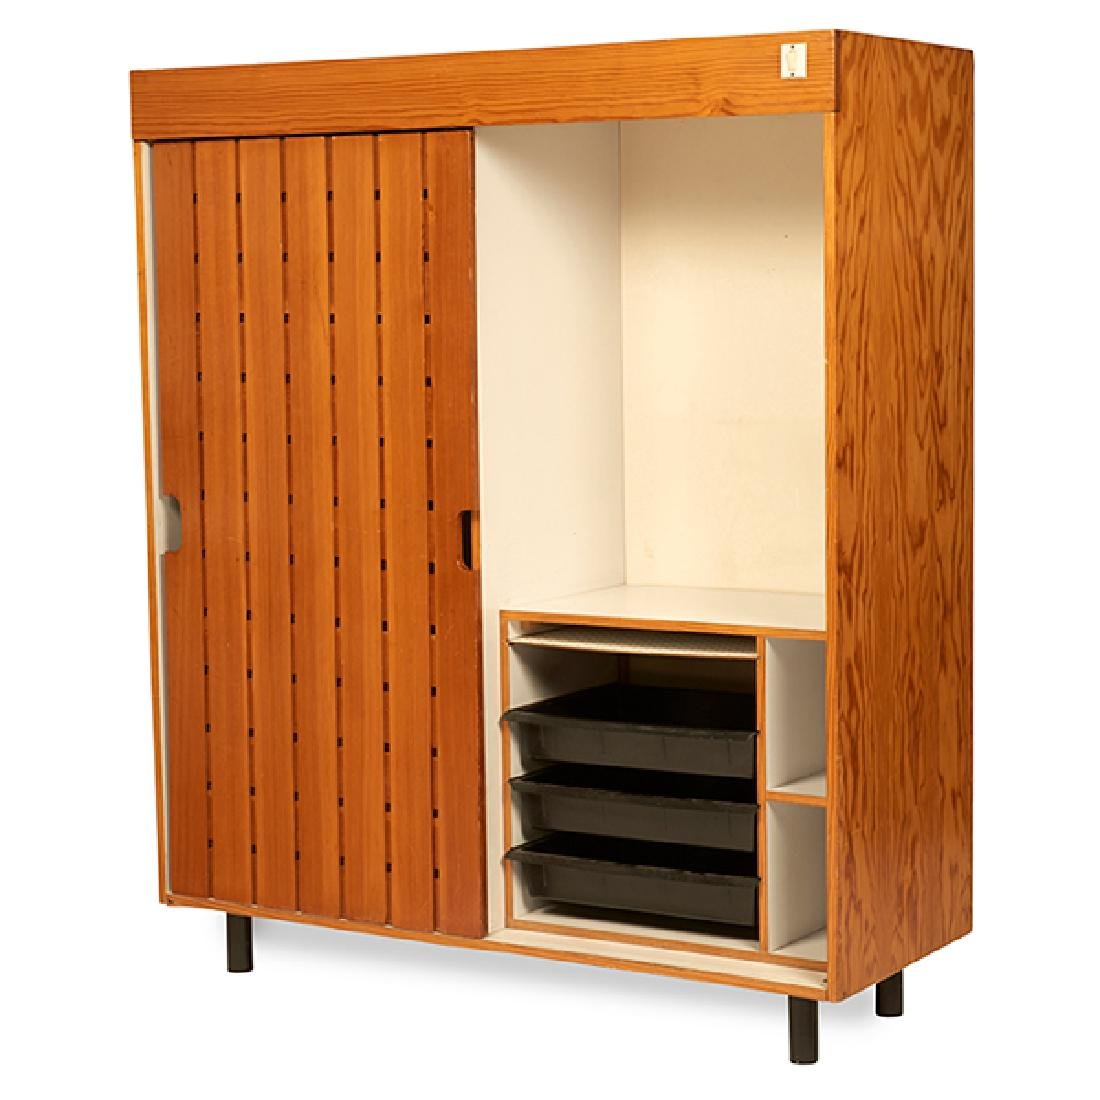 Charlotte Perriand (1903-1999) wardrobe cabinet from